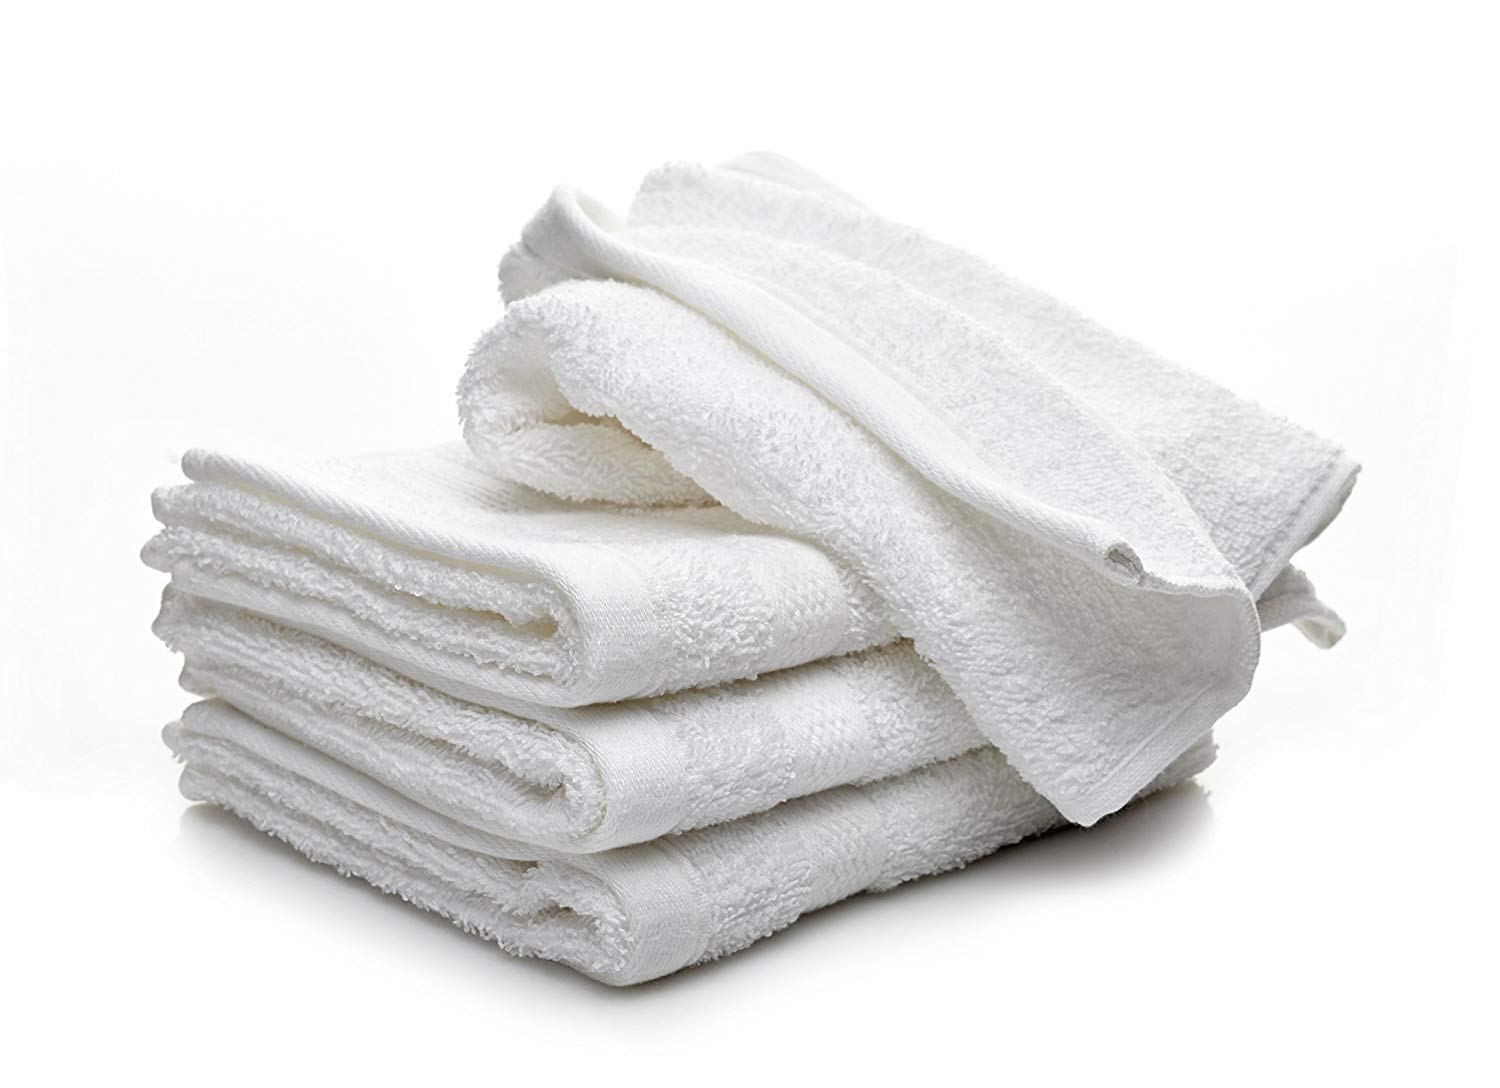 Zeppoli Wash Cloth, Natural Cotton Bath Towels